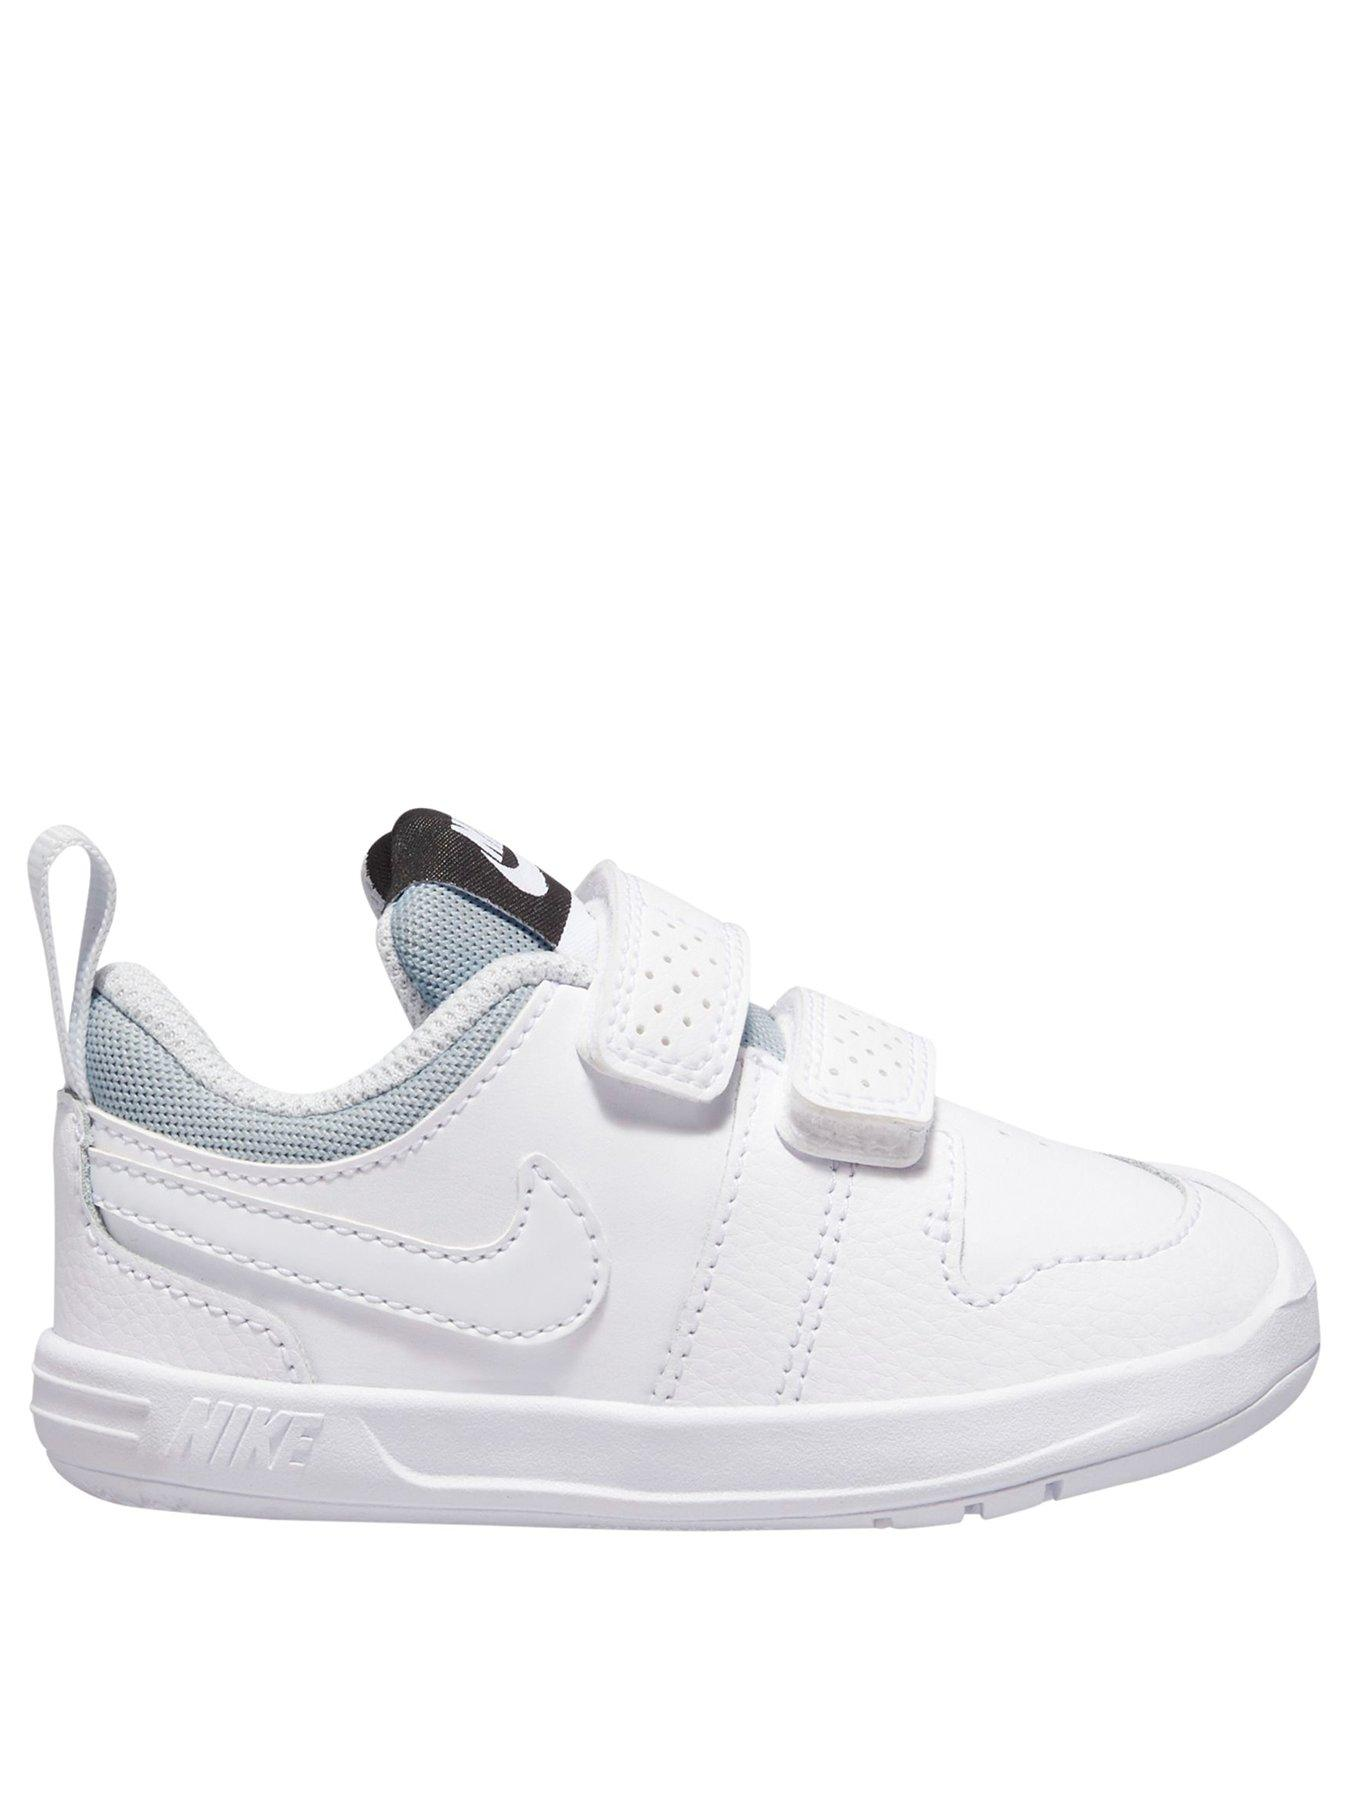 Infant footwear (sizes 0-9) | Trainers